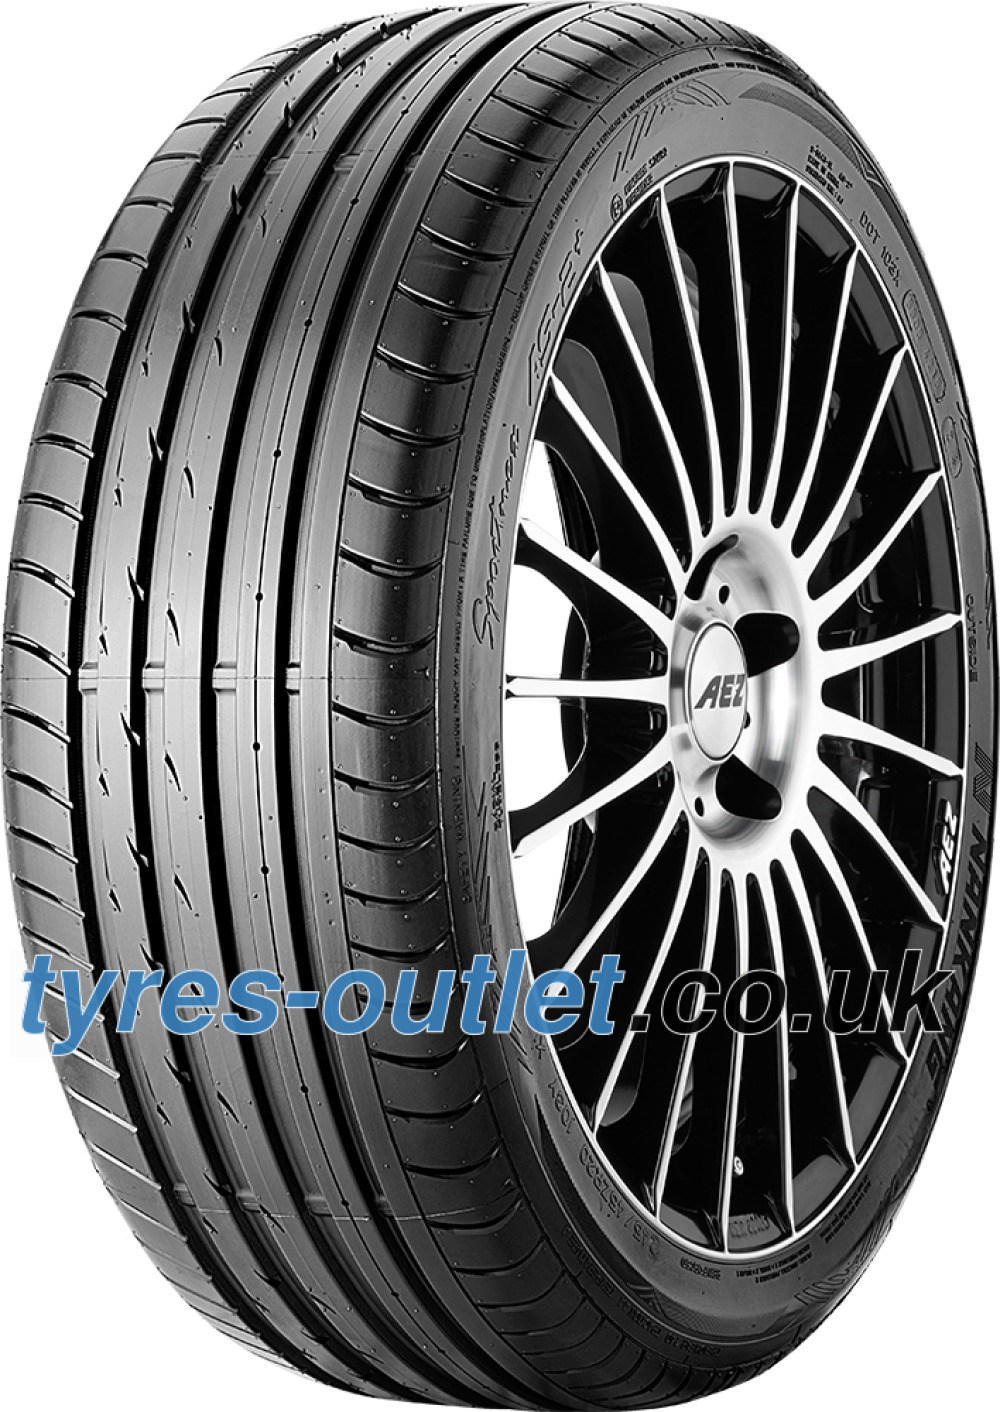 Nankang Sportnex AS-2+ ( 205/50 R17 93V XL with rim protection (MFS) )